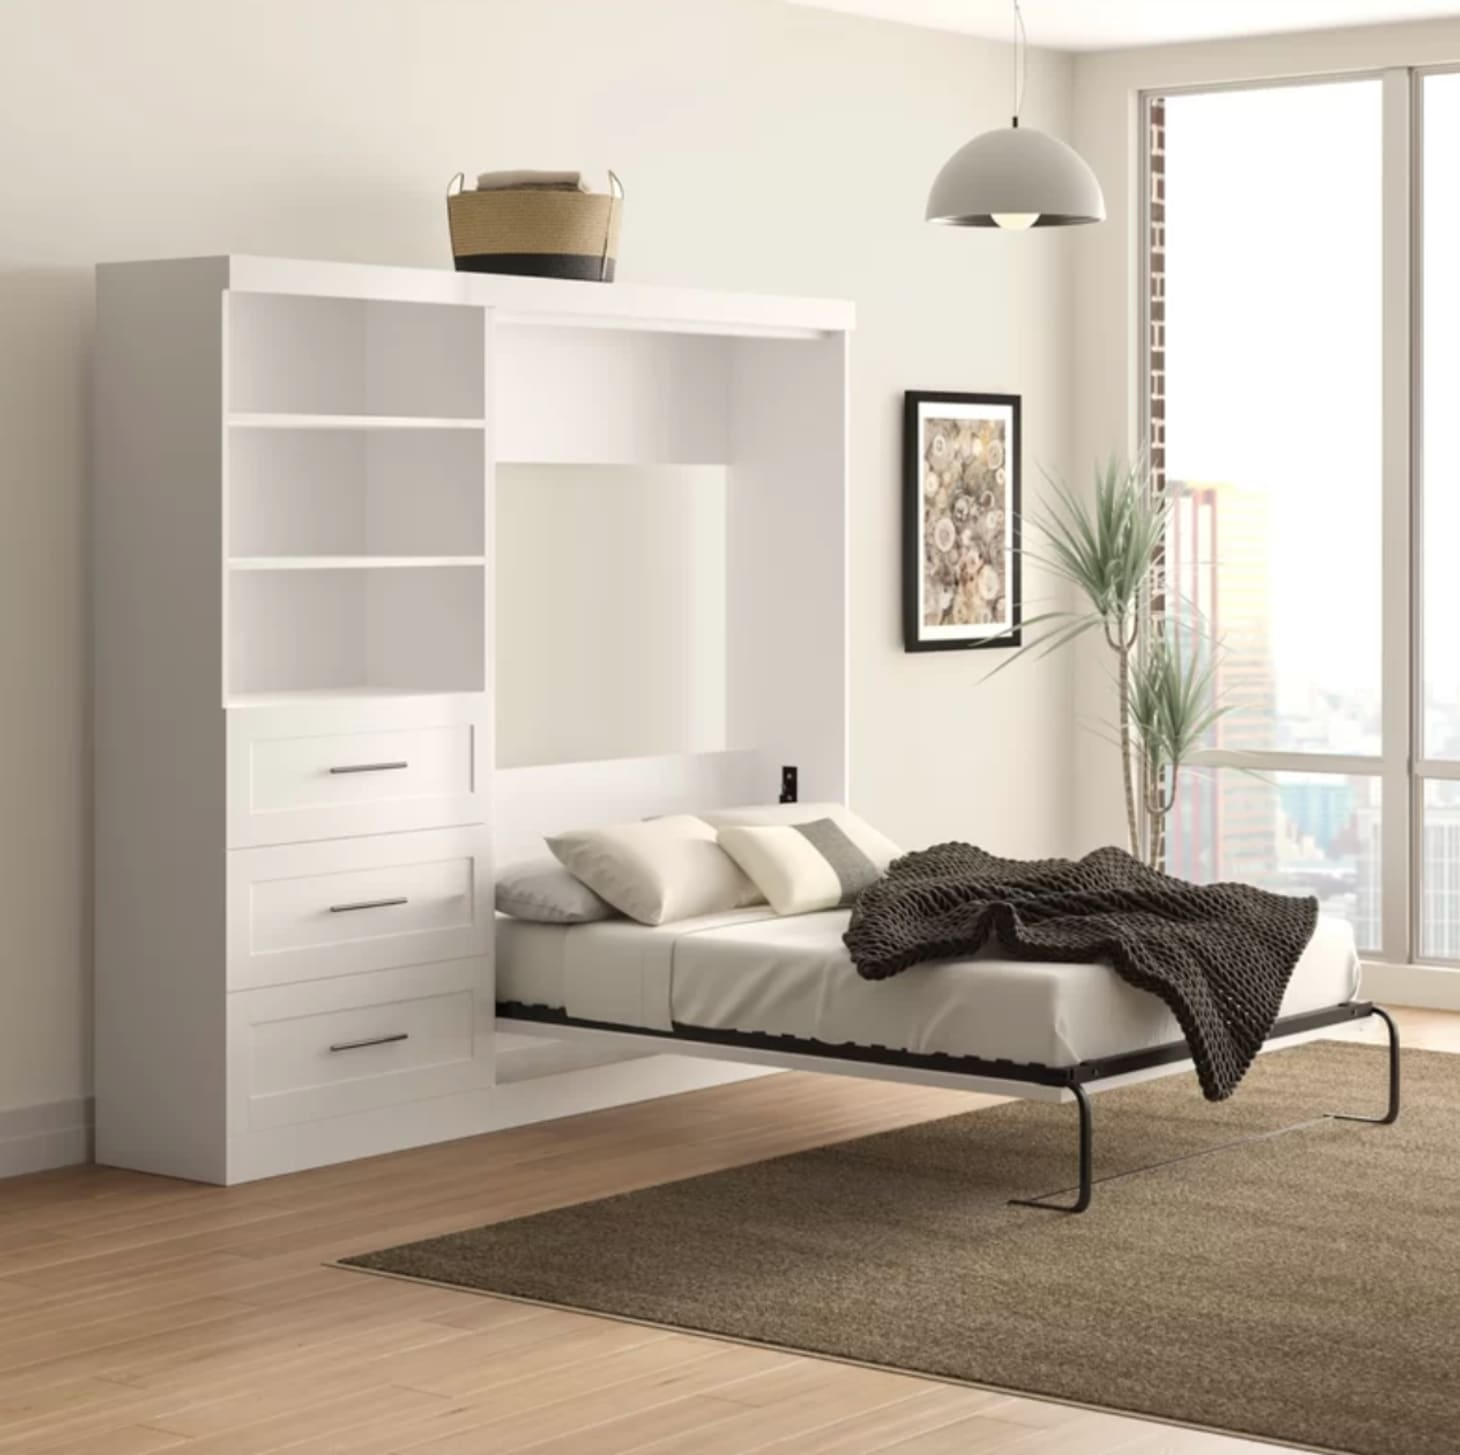 7 Chic Murphy Beds to Help You Fake a Guest Bedroom ...